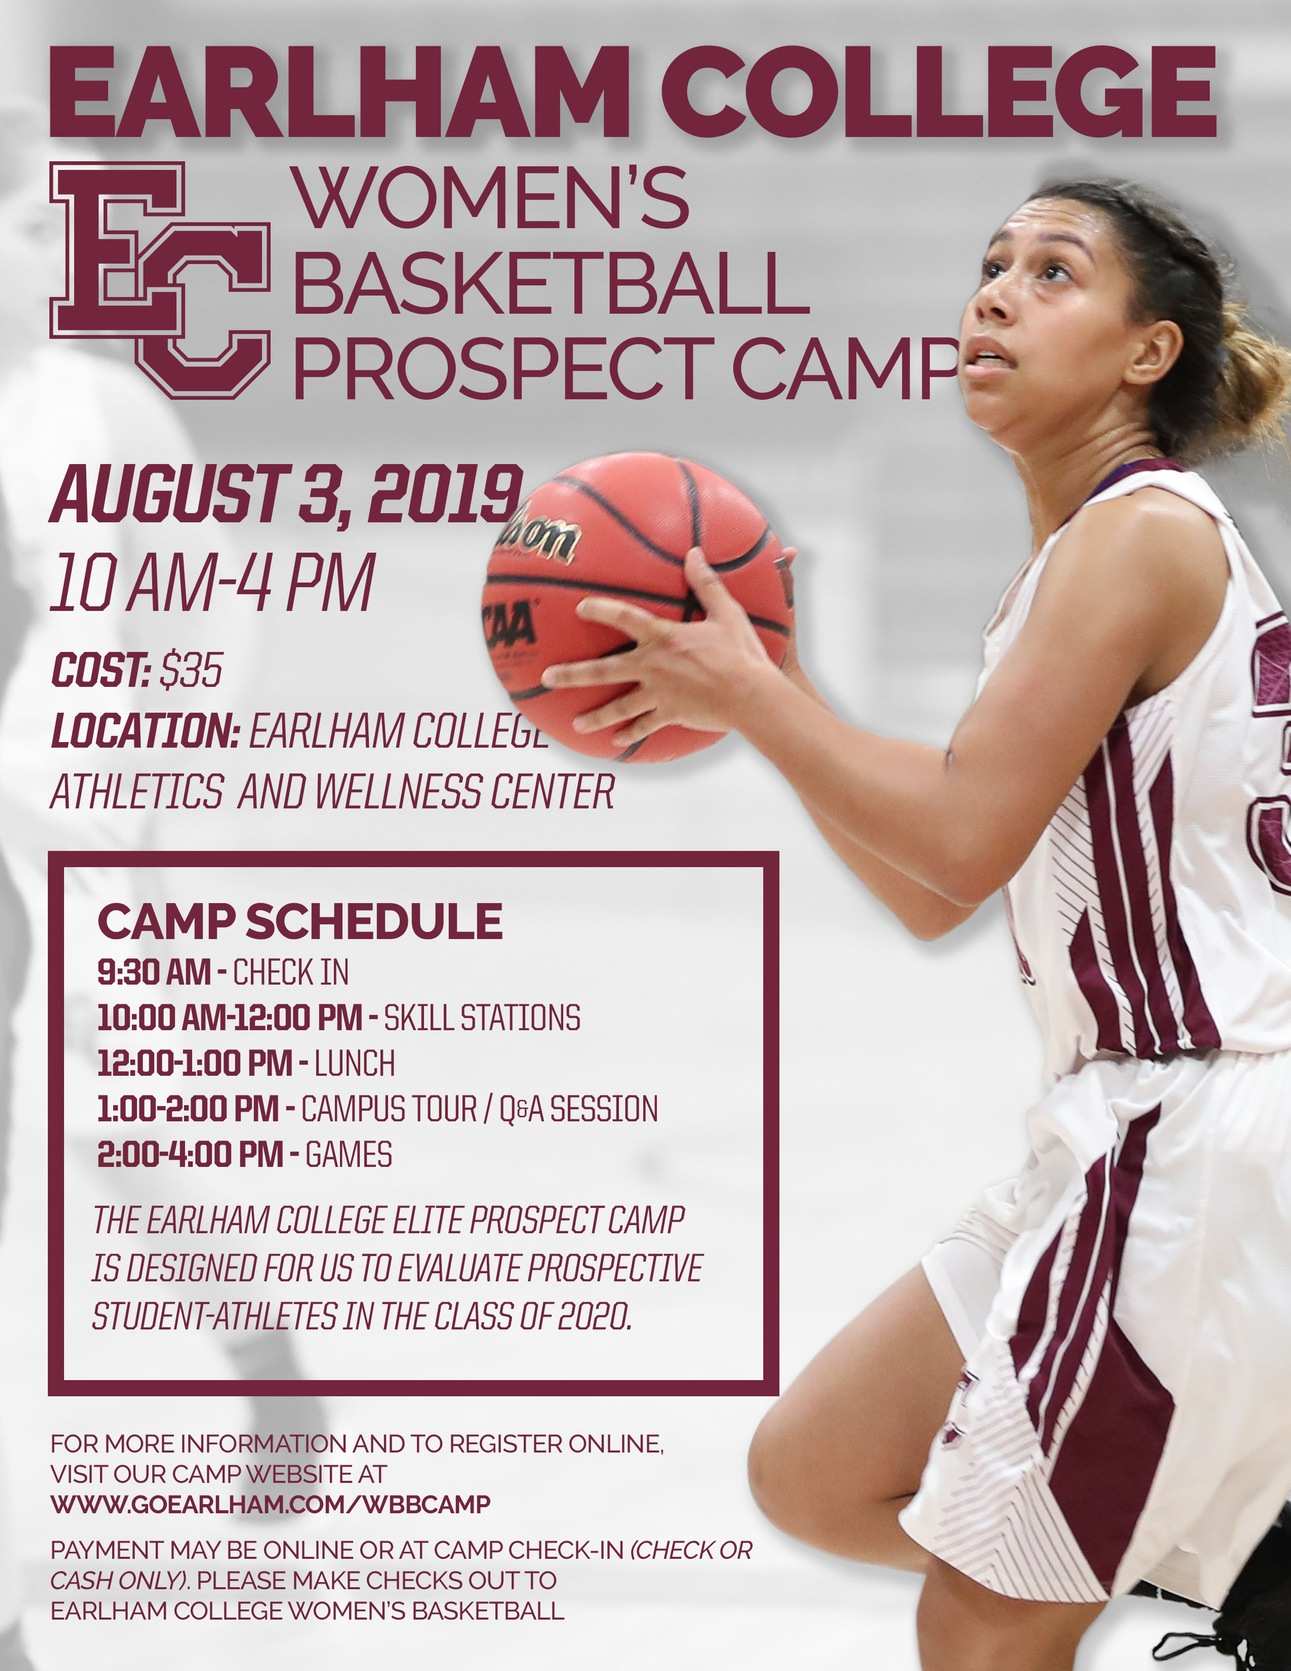 2019 Earlham College WBB Prospect Camp flyer